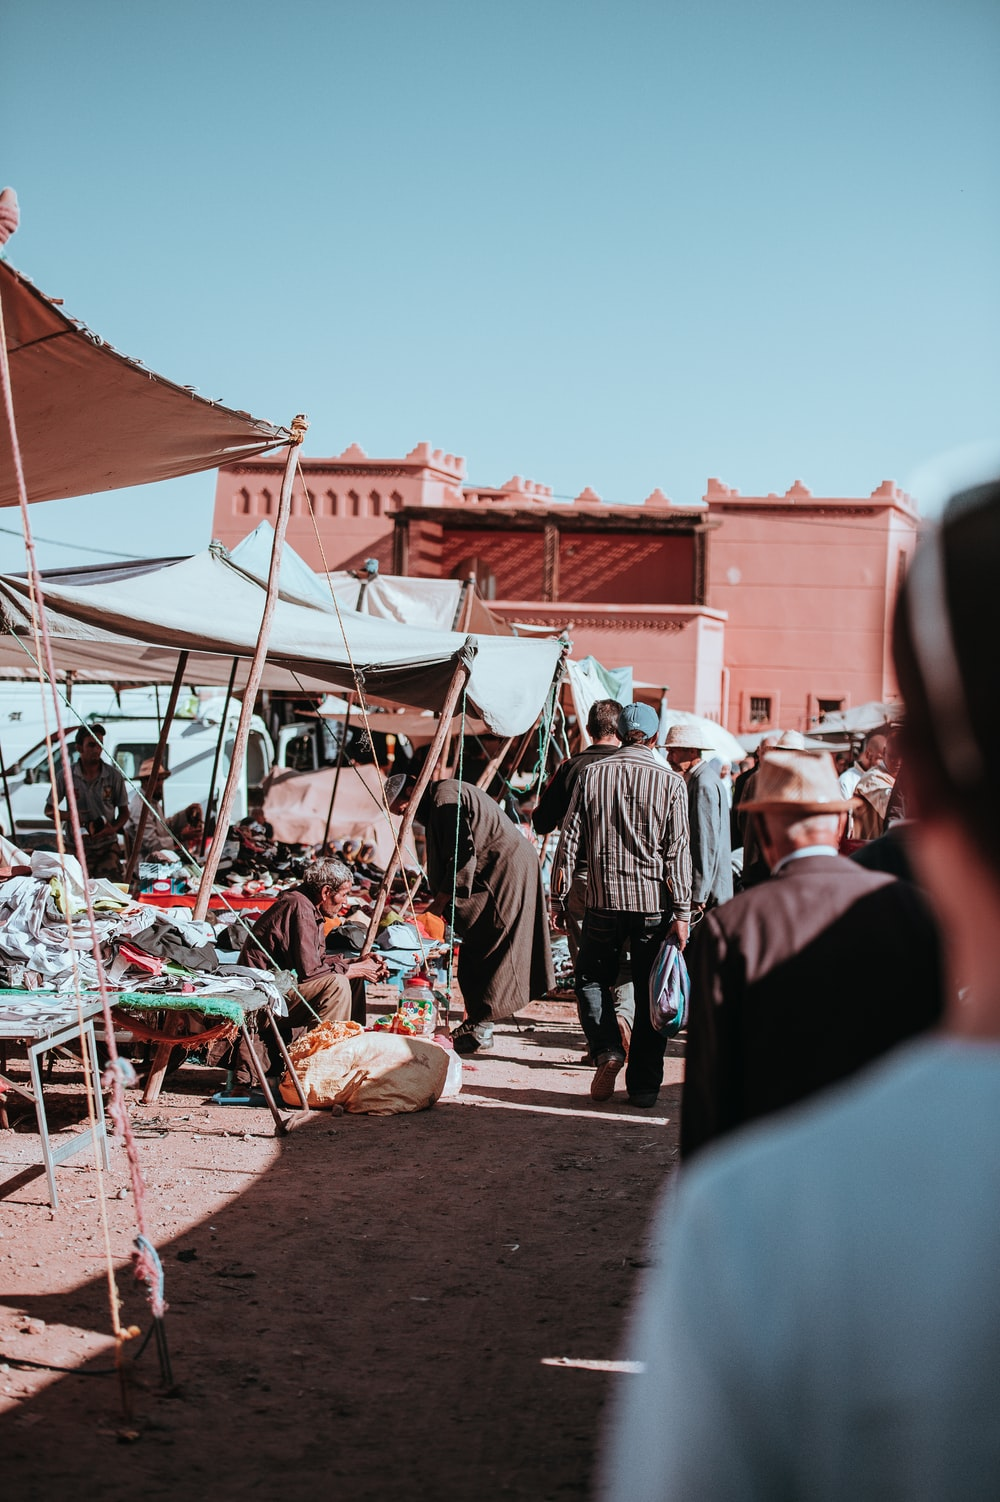 group of people on day market